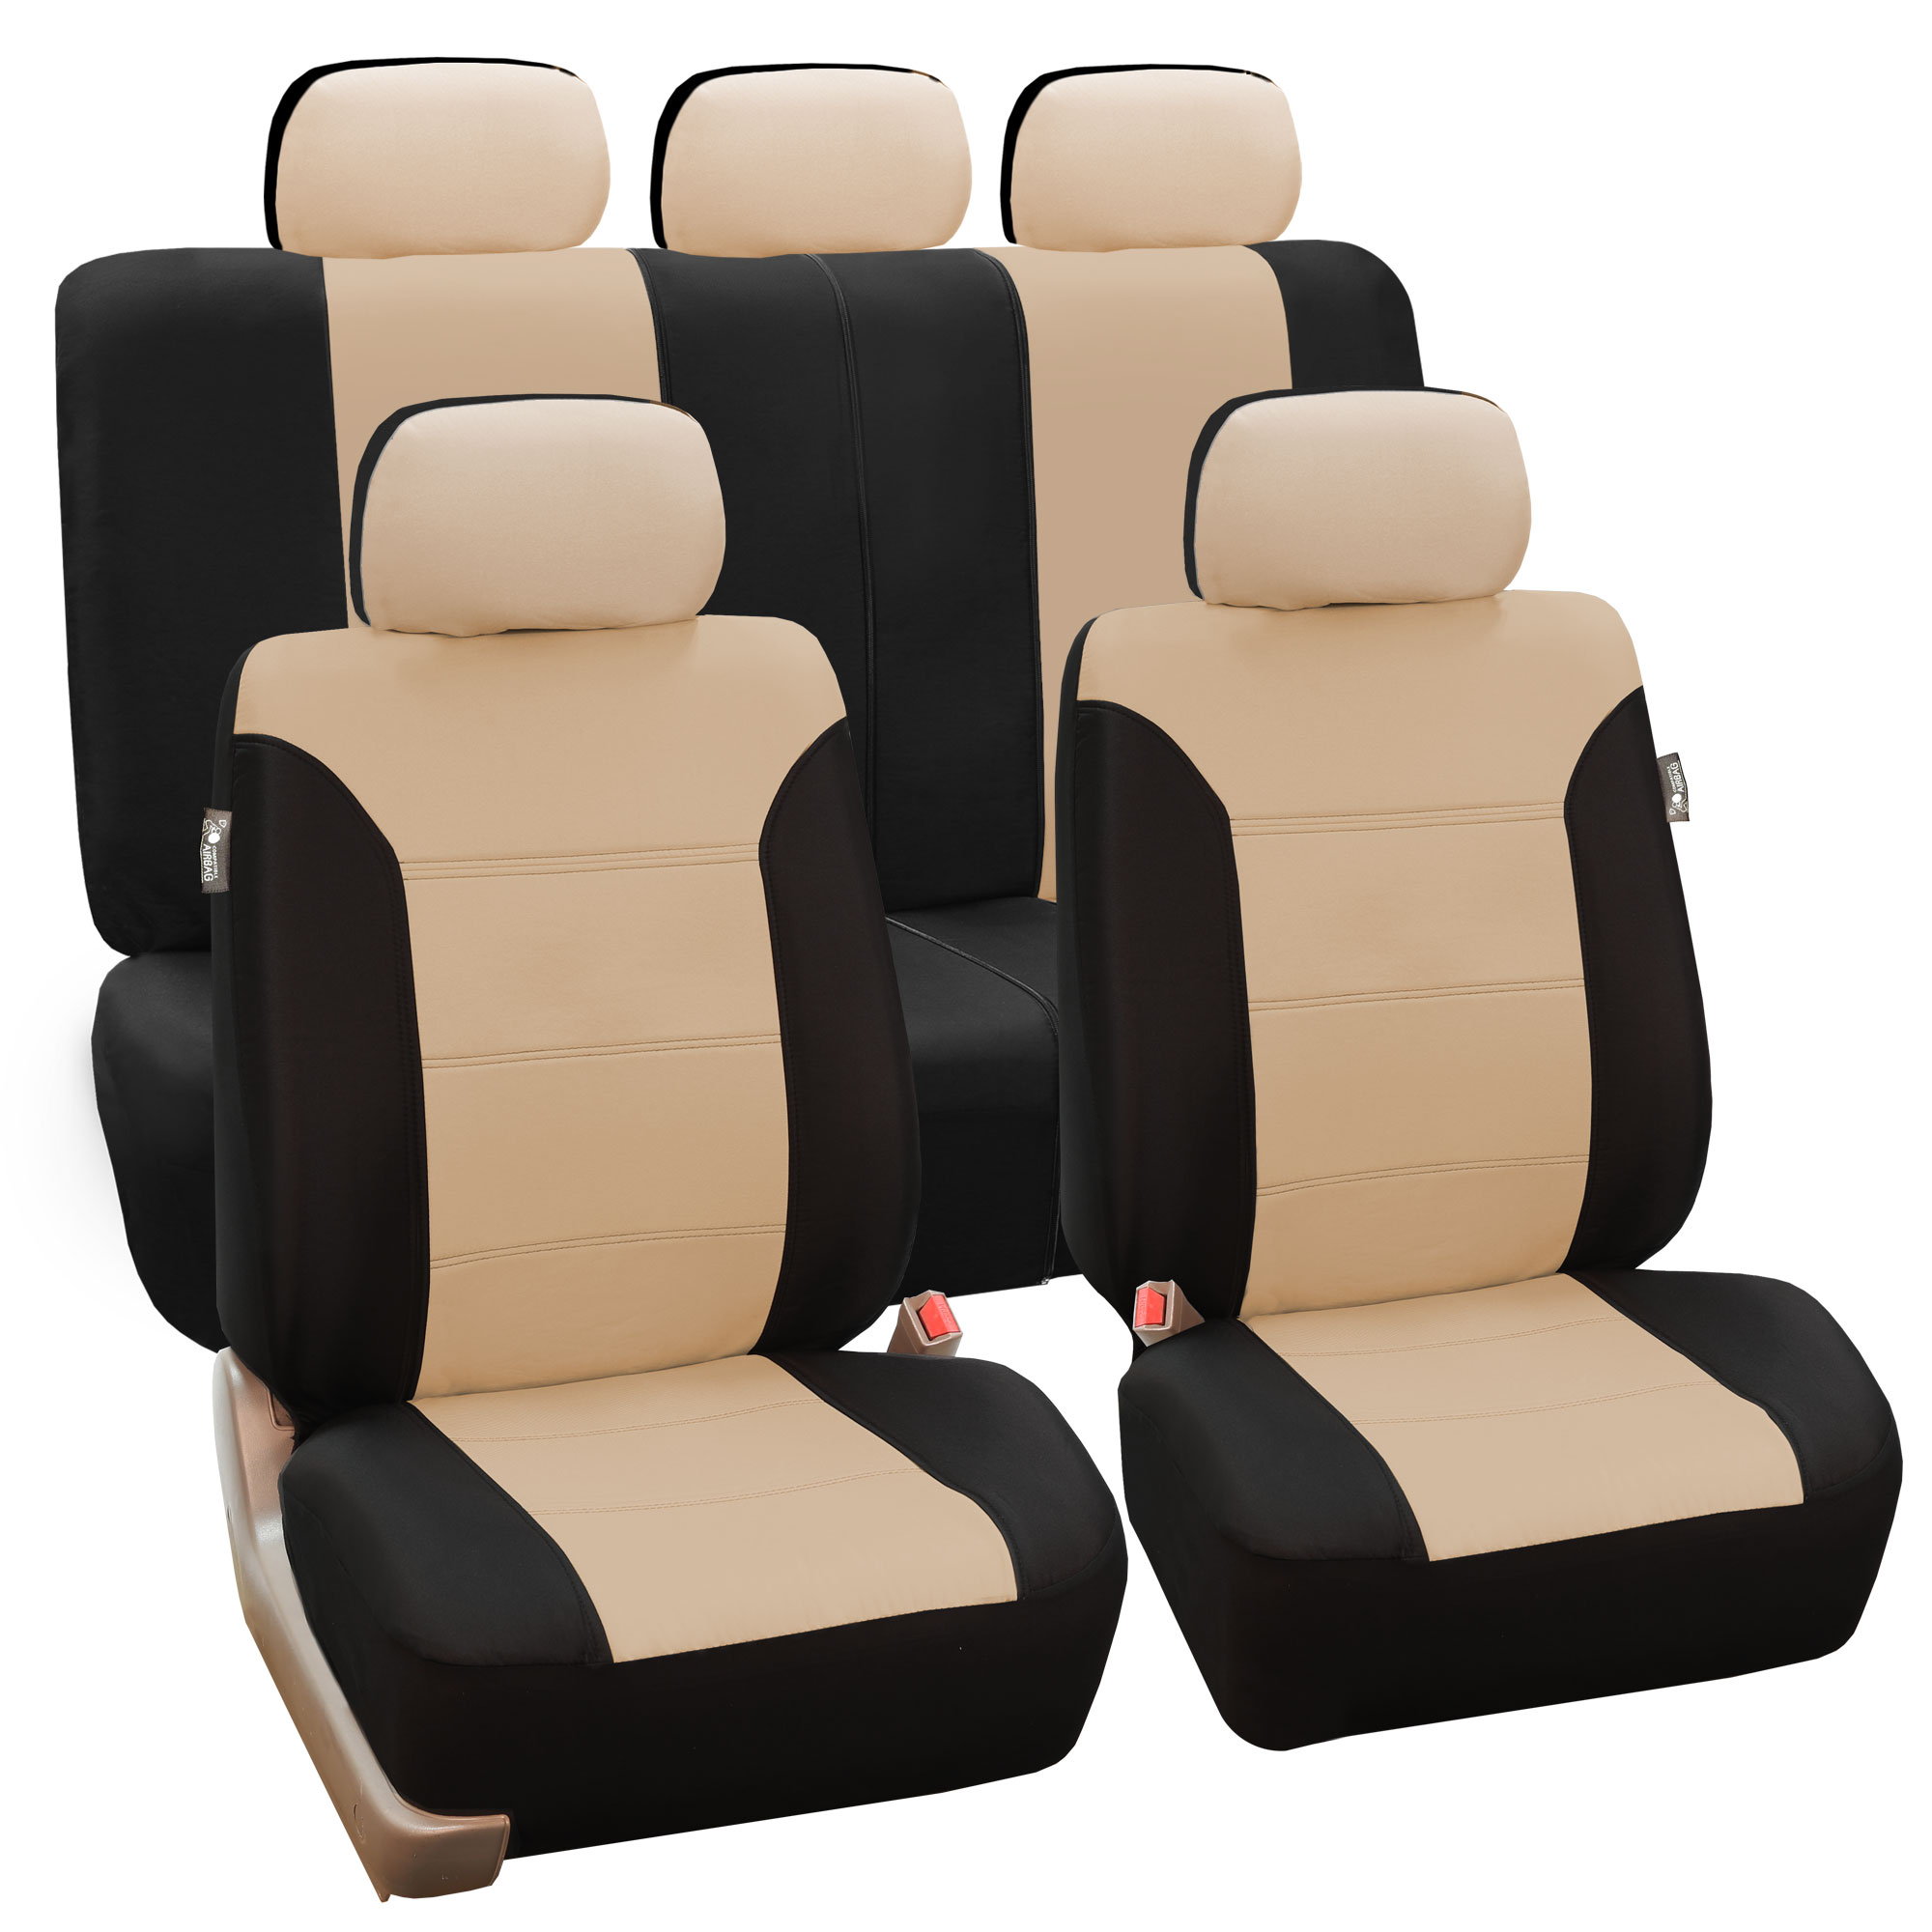 beige black car seat covers set for auto w floor mat. Black Bedroom Furniture Sets. Home Design Ideas